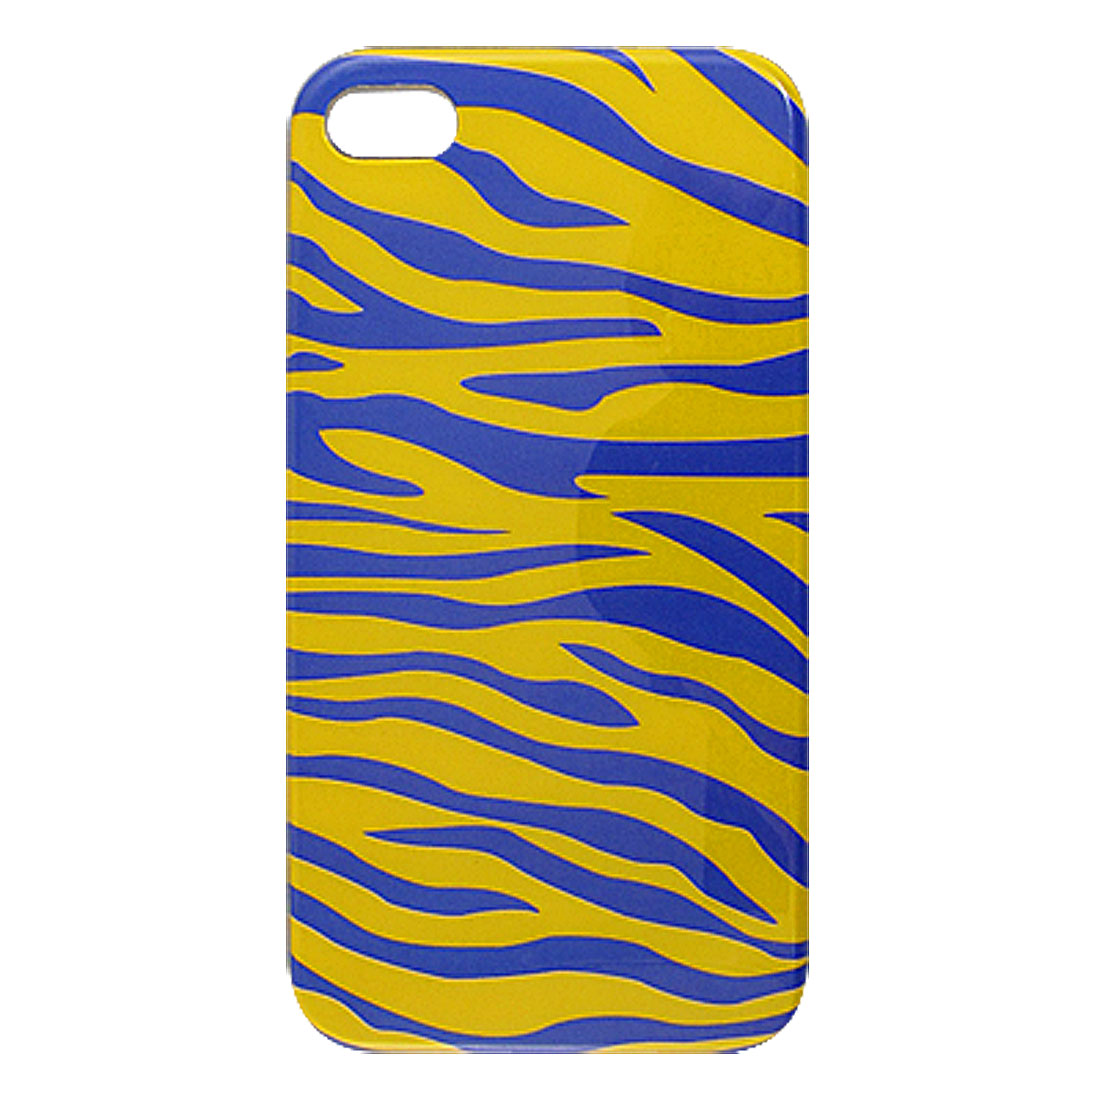 Blue Yellow Zebra Print Hard Plastic Back Case Cover for iPhone 4 4S 4G 4GS